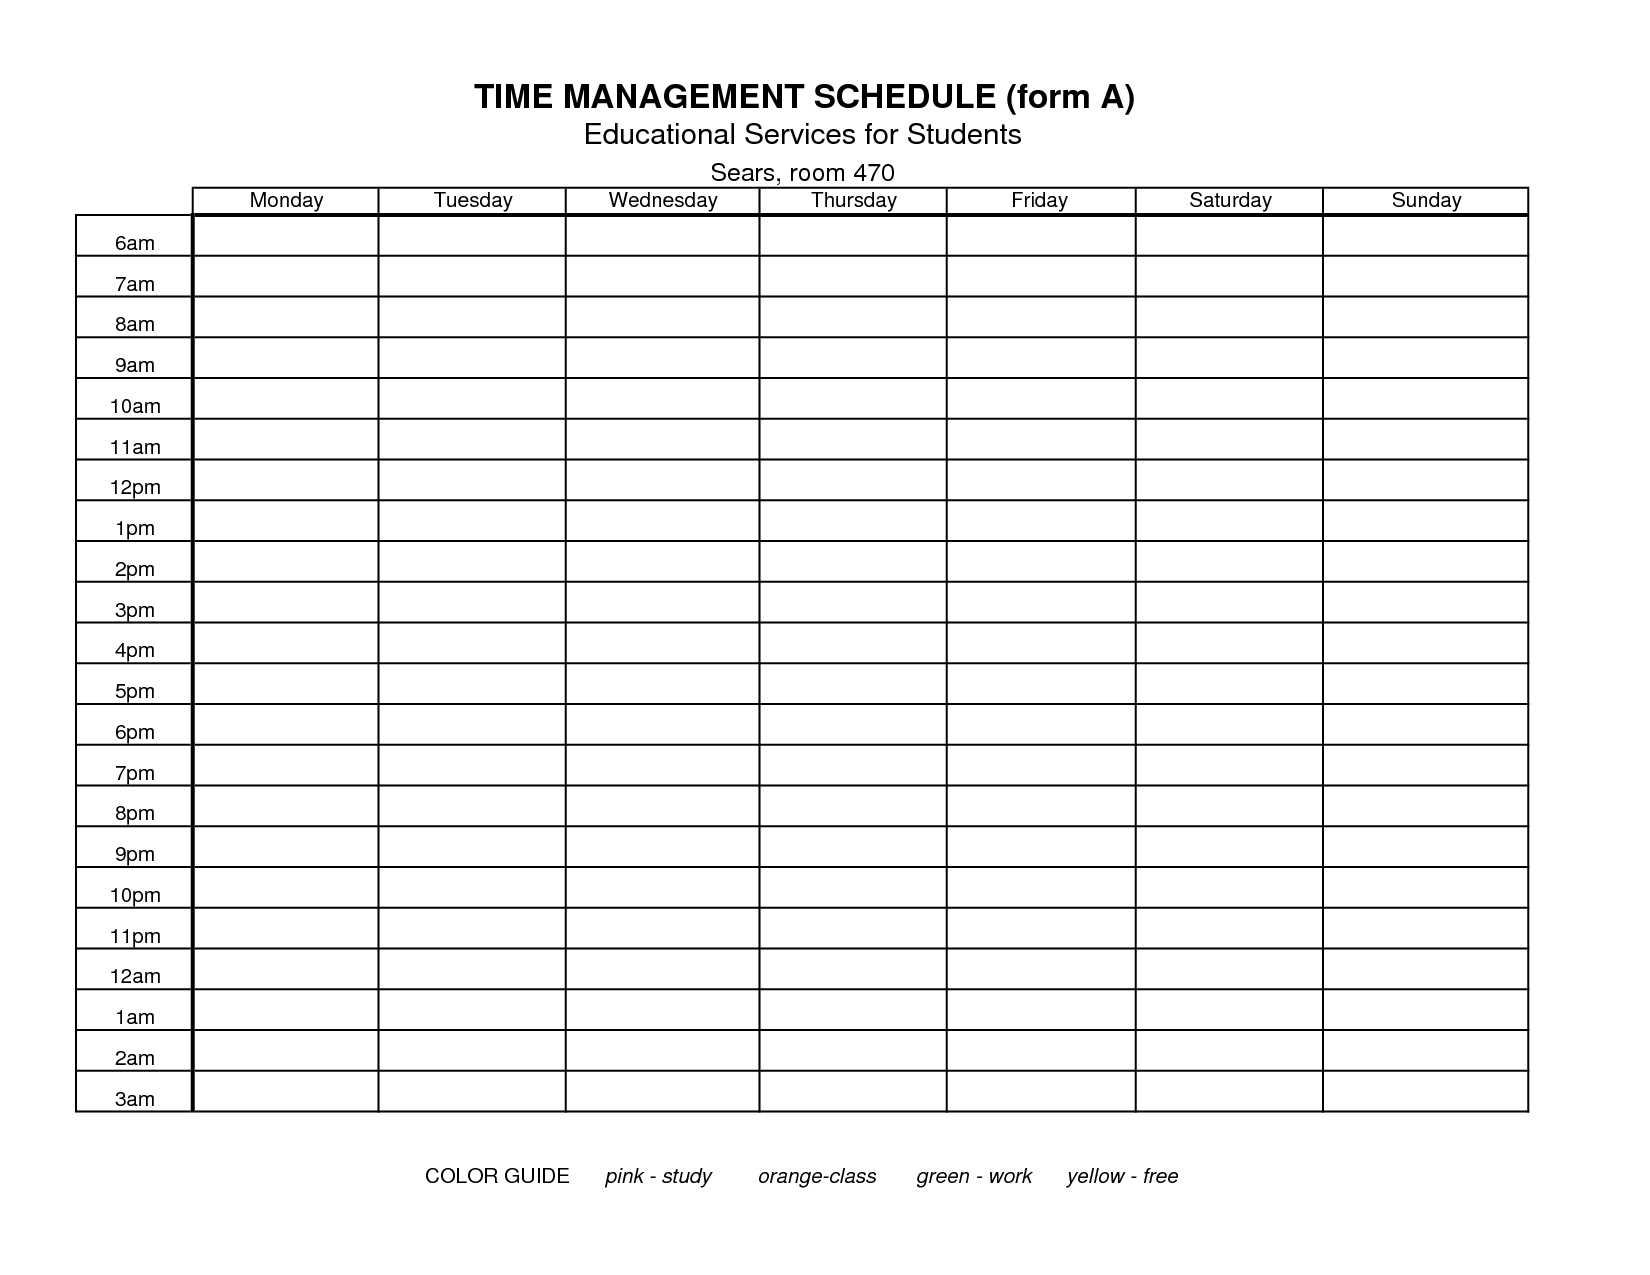 time management schedule template_274724